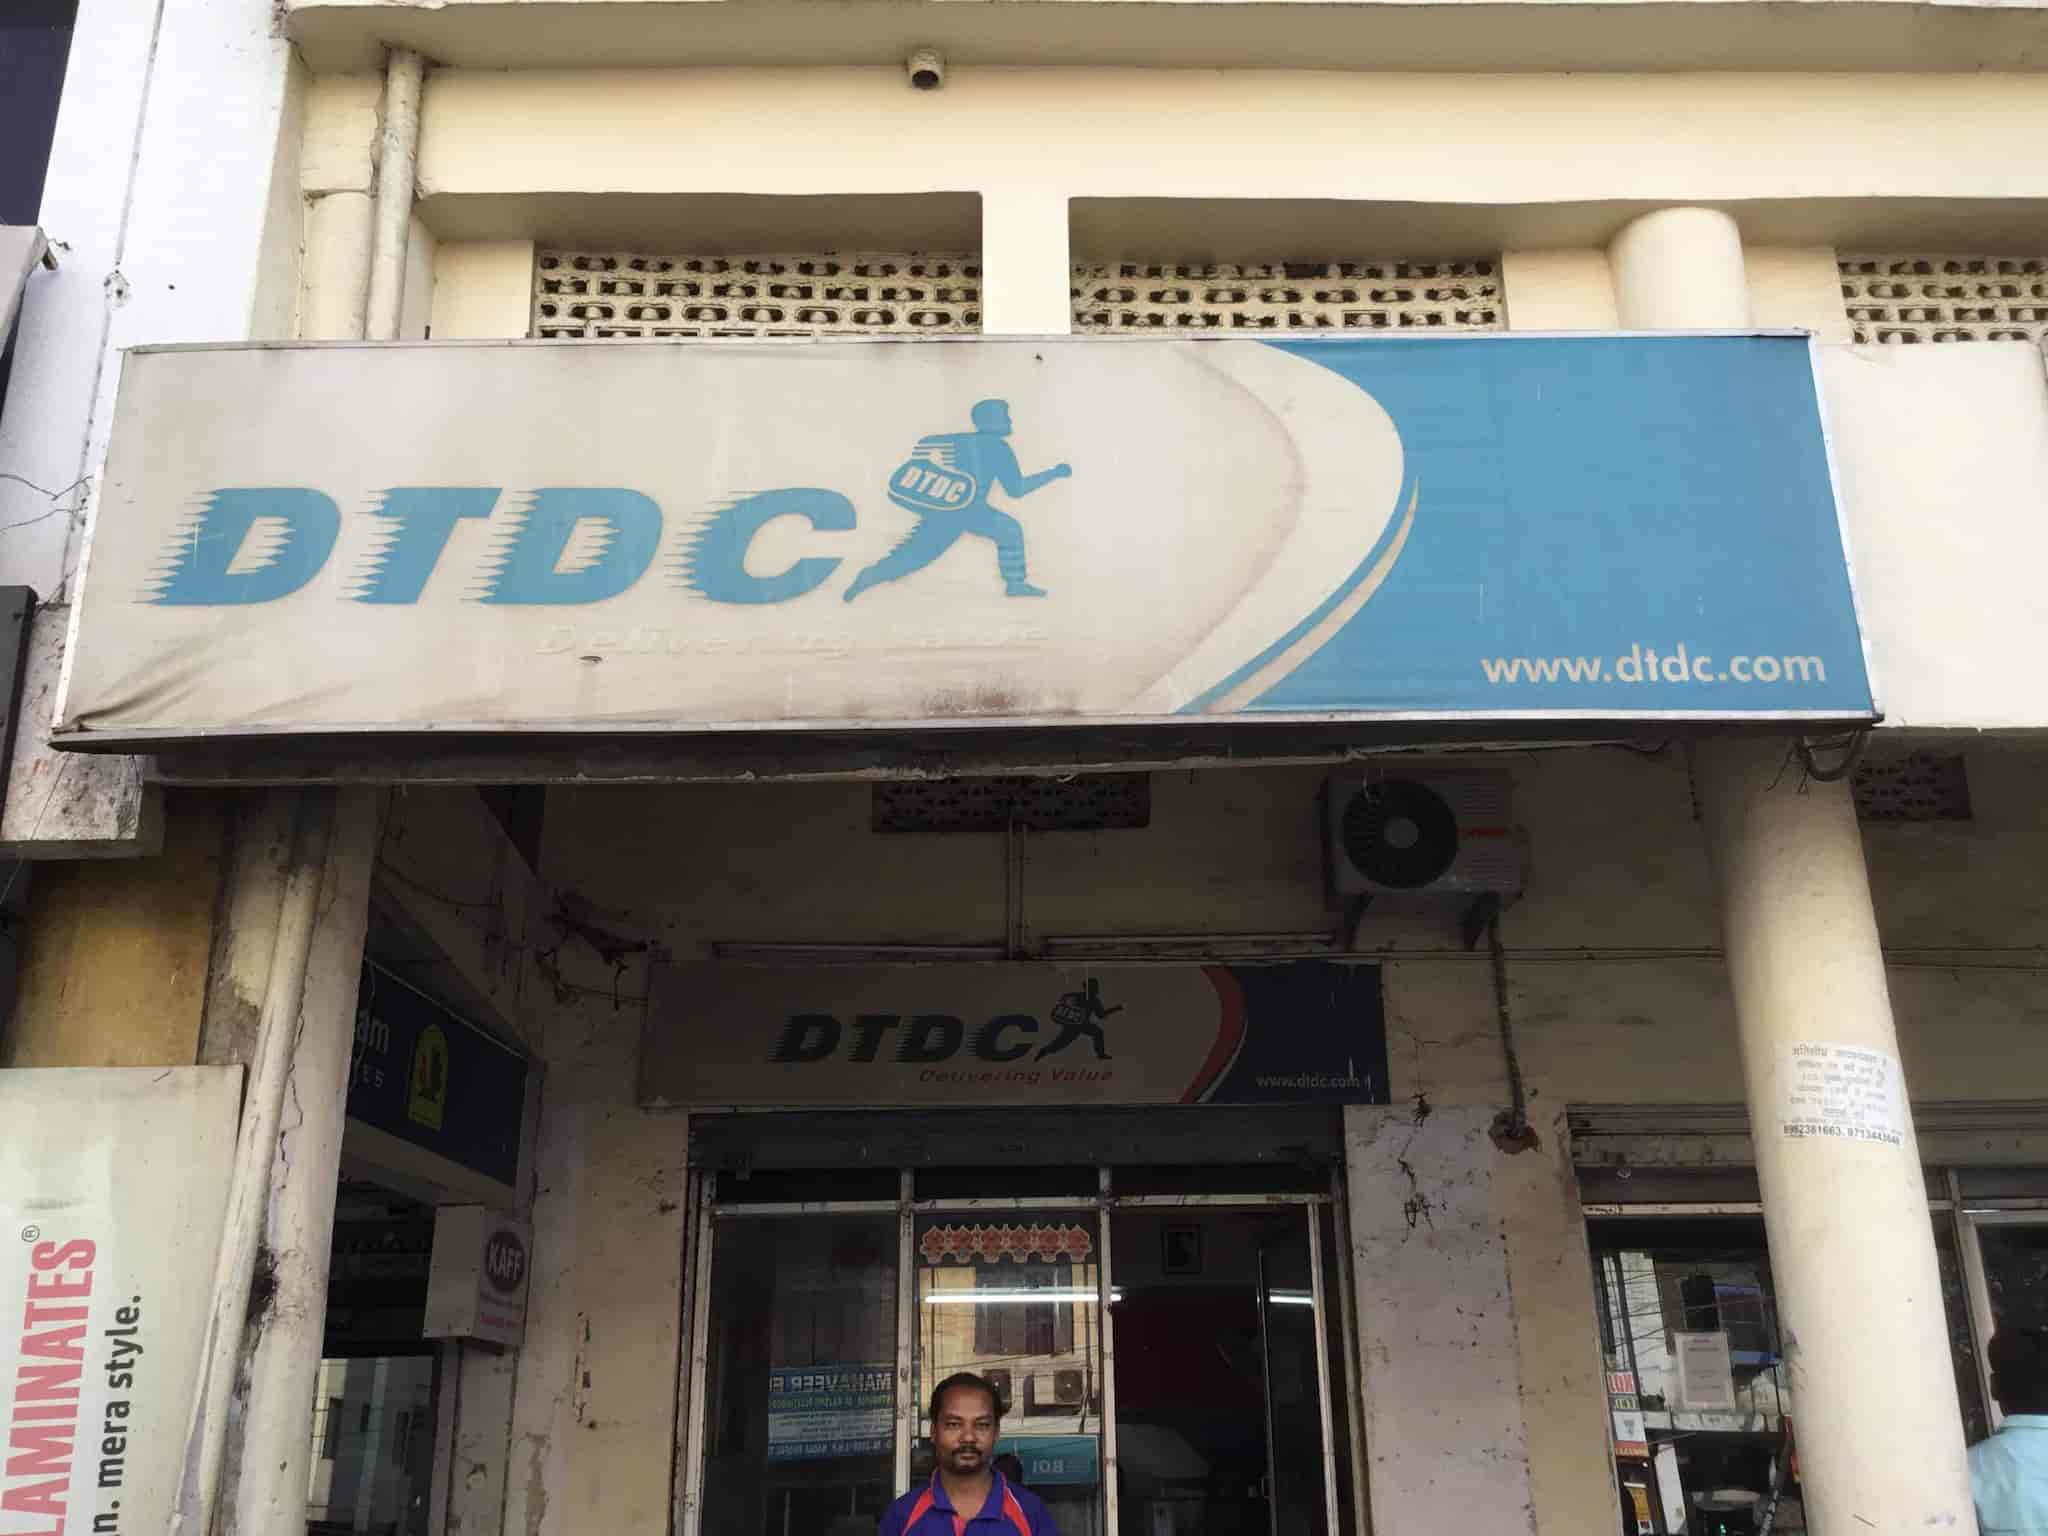 Dtdc Express Ltd M P Nagar Courier Services In Bhopal Justdial